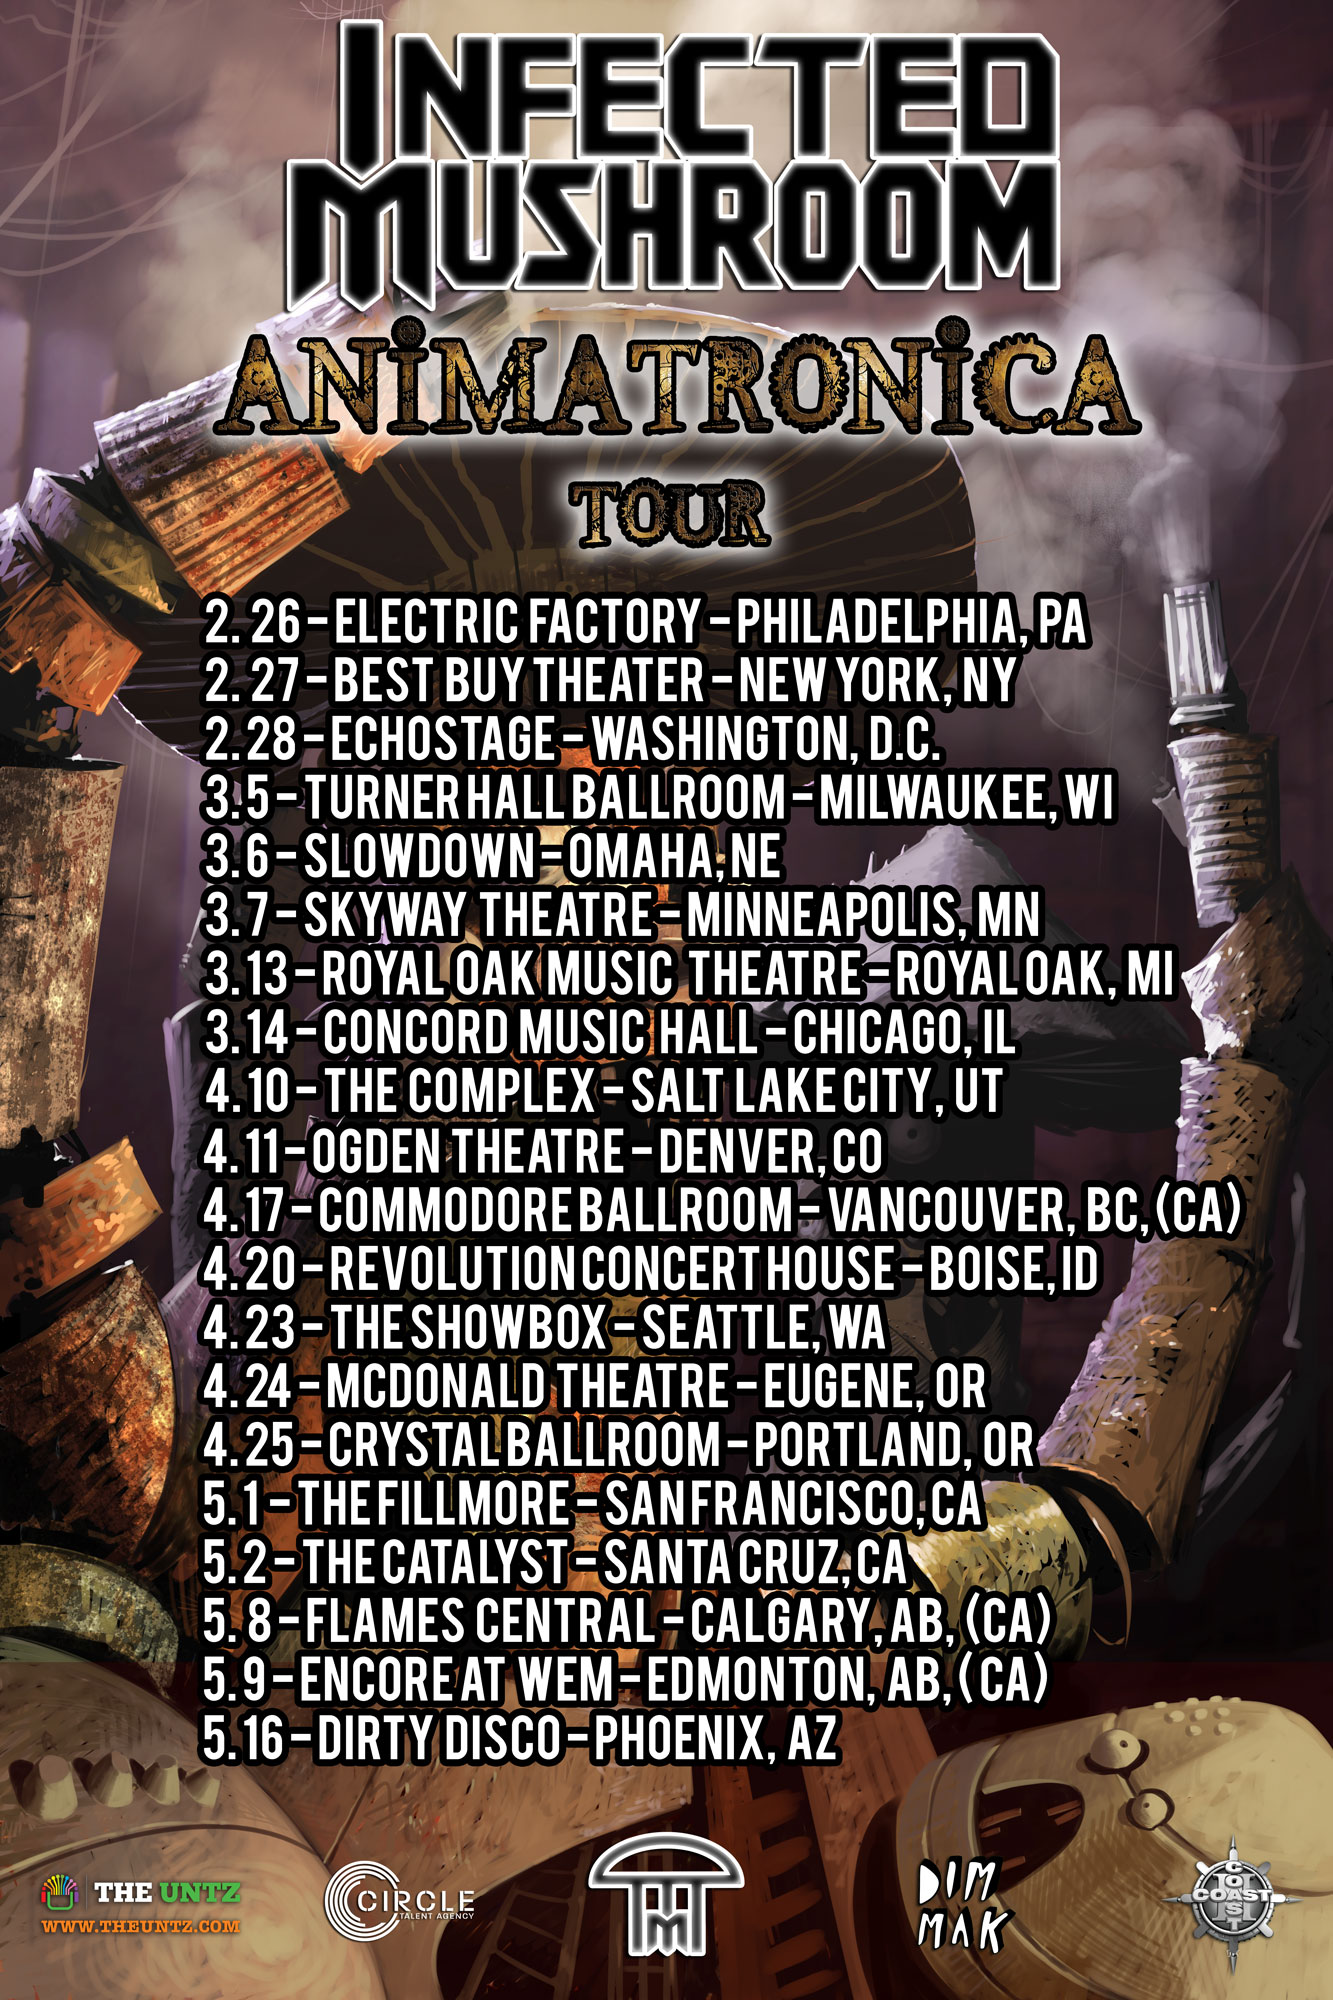 Infected Mushroom Songs Ele infected mushroom reveals animatronica live band tour dates